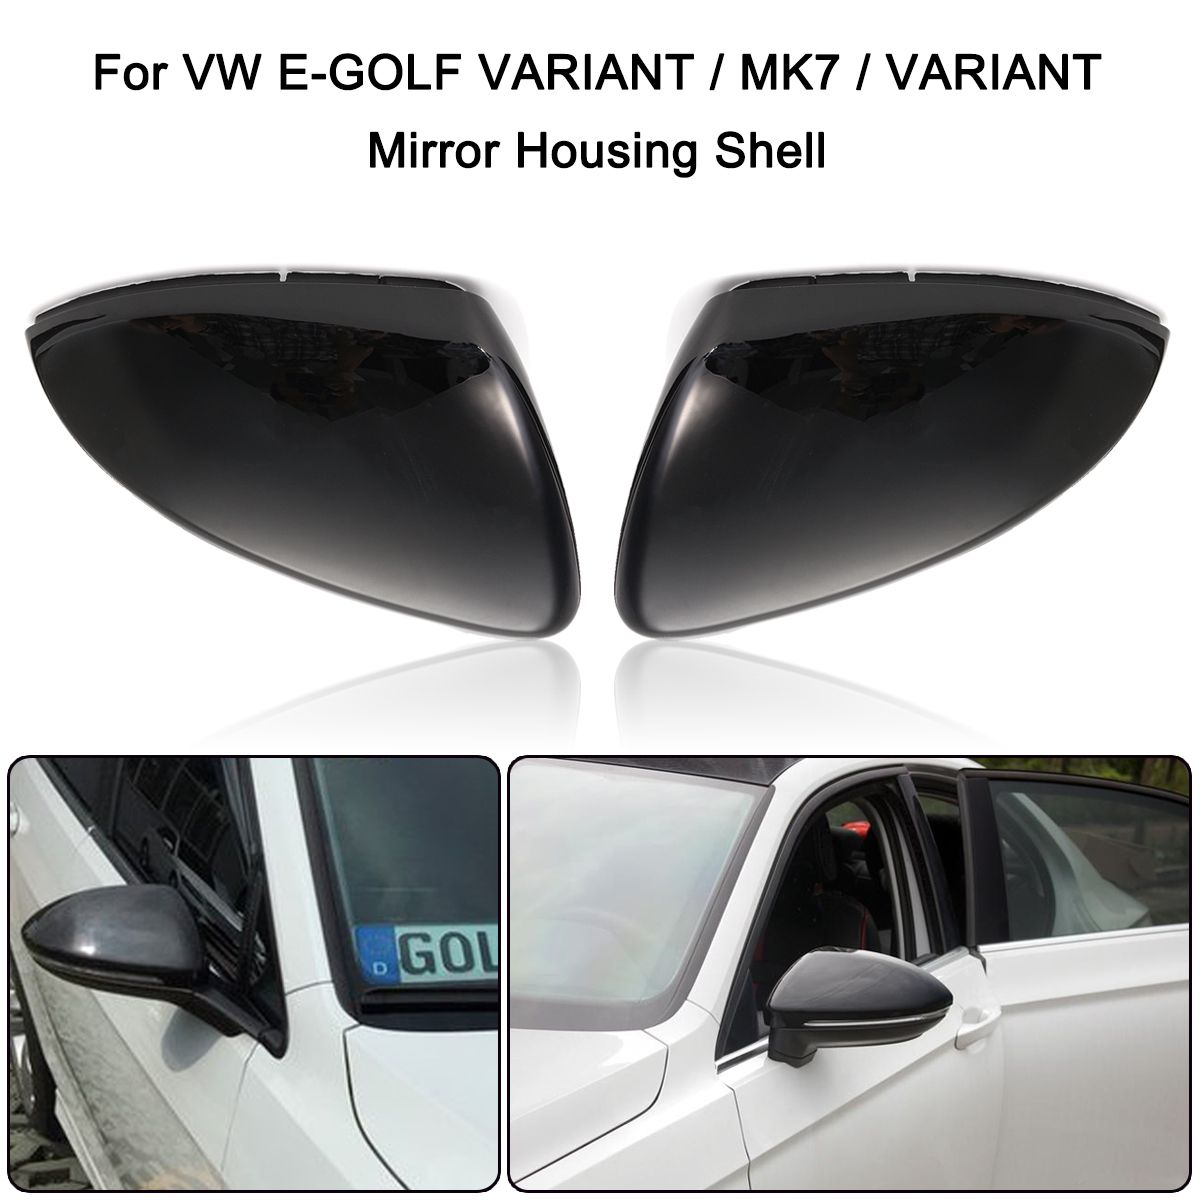 Pair Rearview Mirror Cover Side Rear View Mirrors Covers For VW Golf MK7 Golf Variant E-Golf L+R